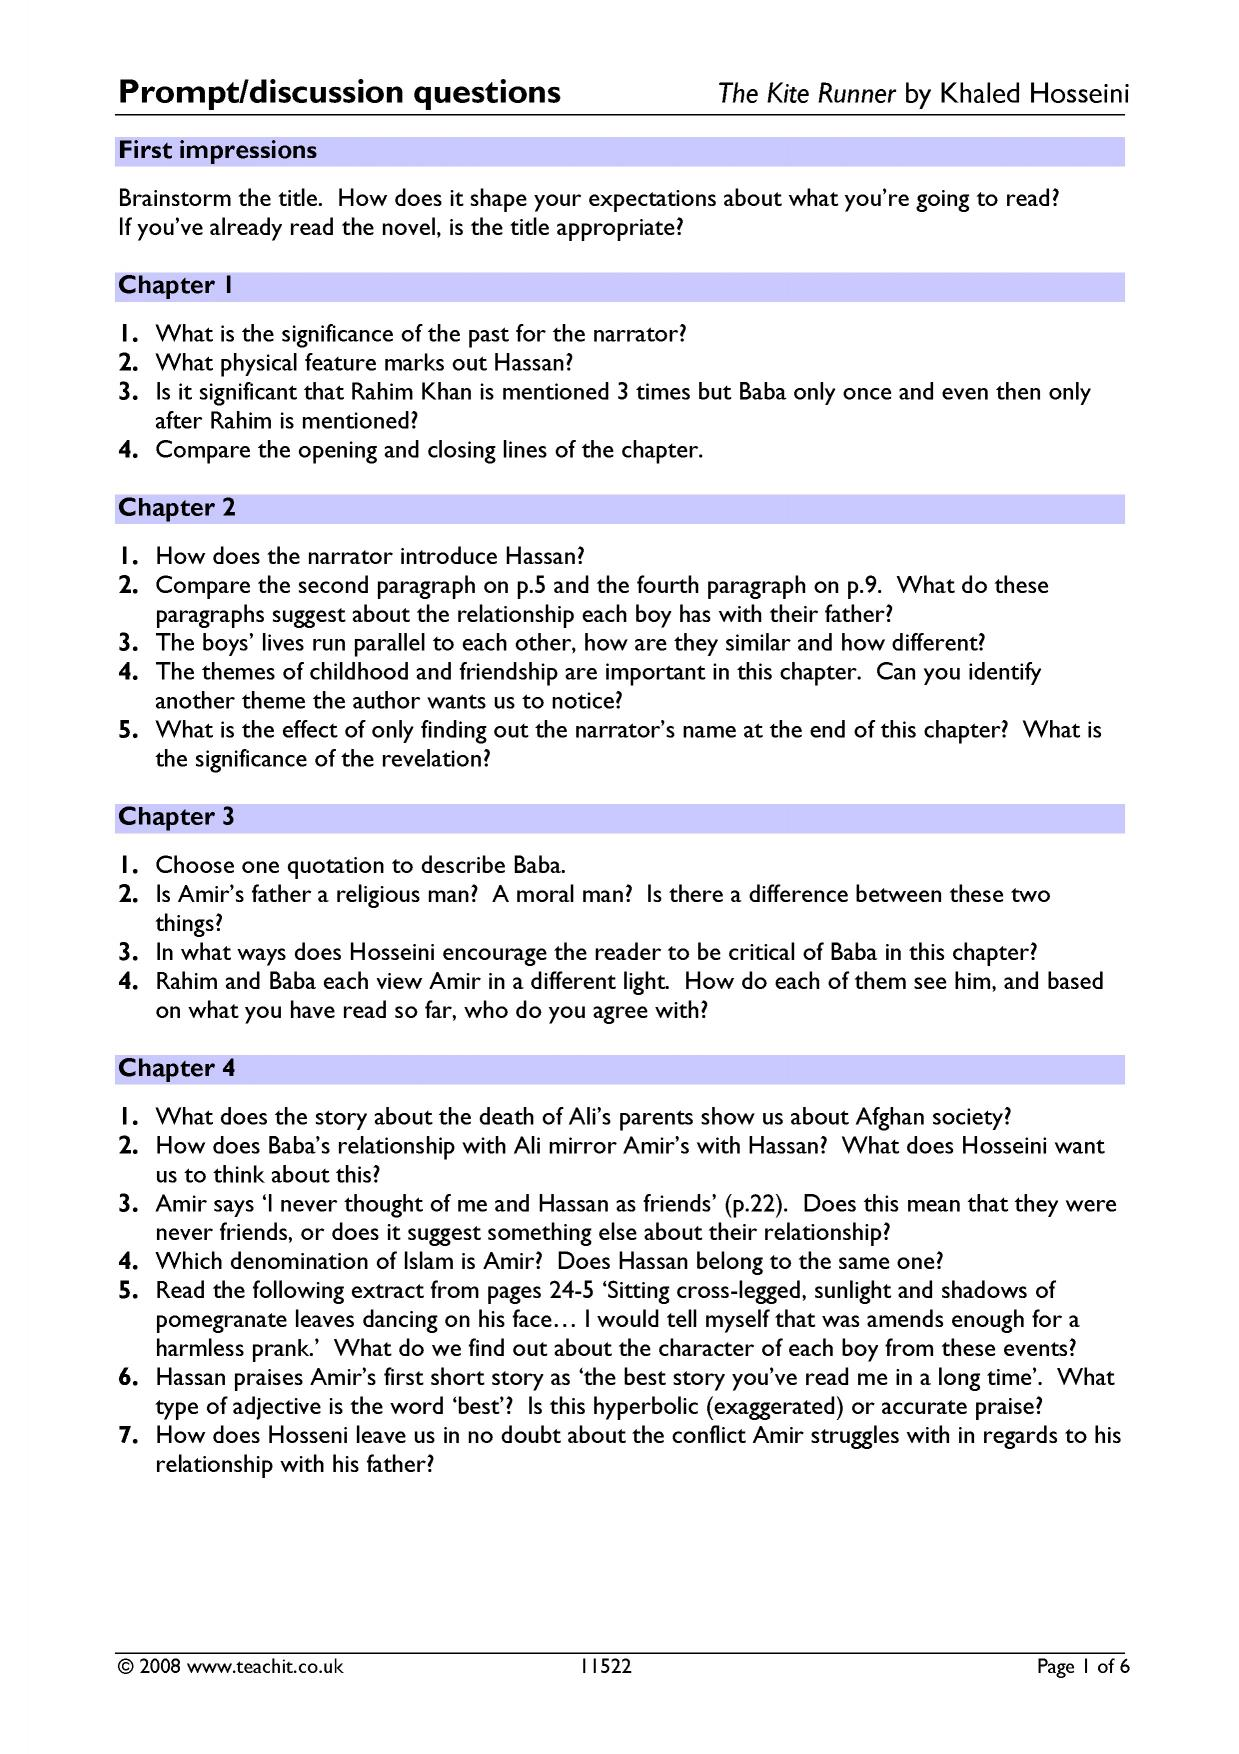 the kite runner essay questions robert cormier heroes essay to  the kite runner by khaled hosseini prose key stage english 0 preview essay paper topics